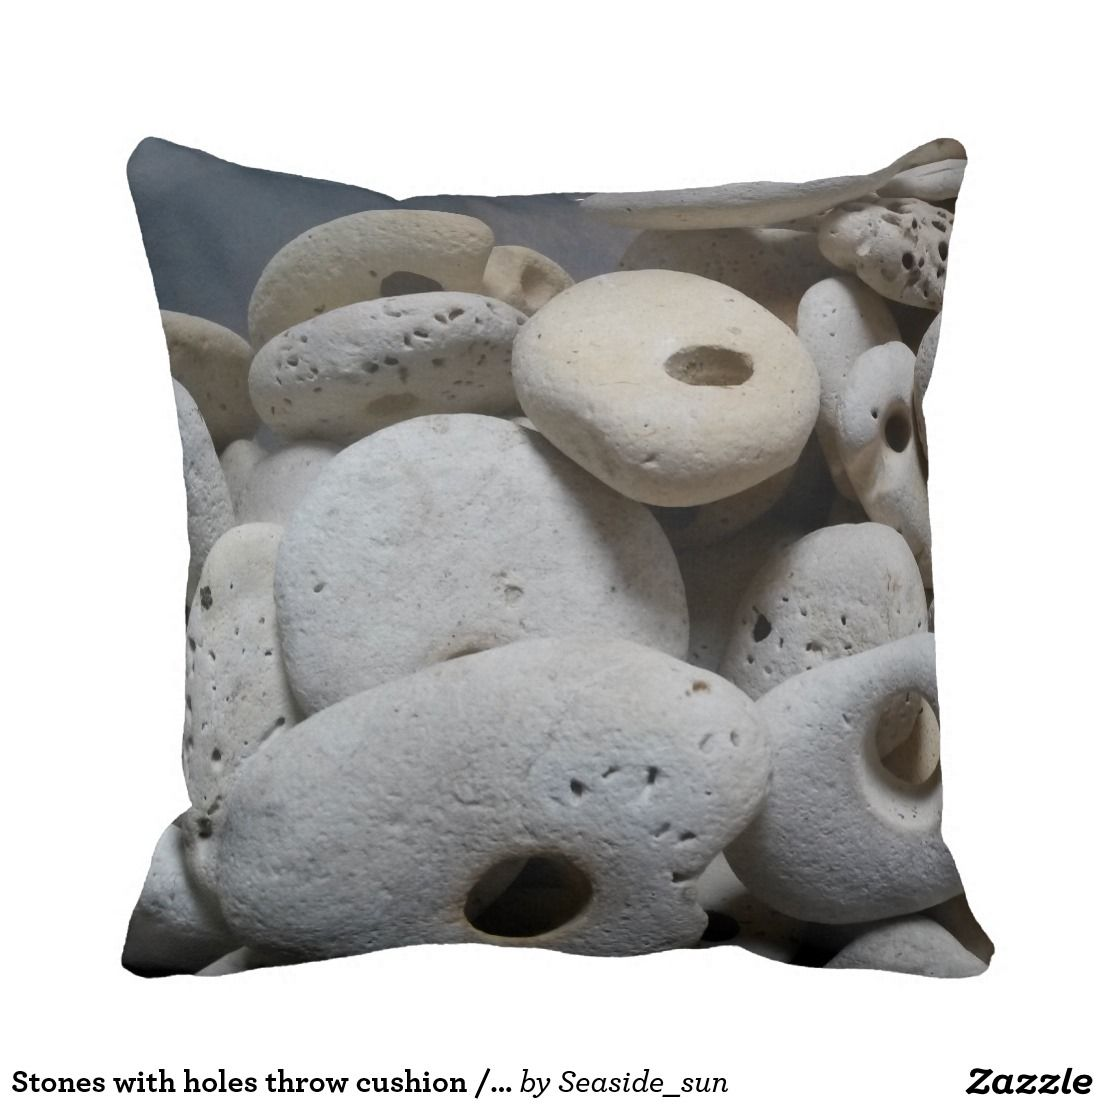 Stones with holes throw cushion / pillow.